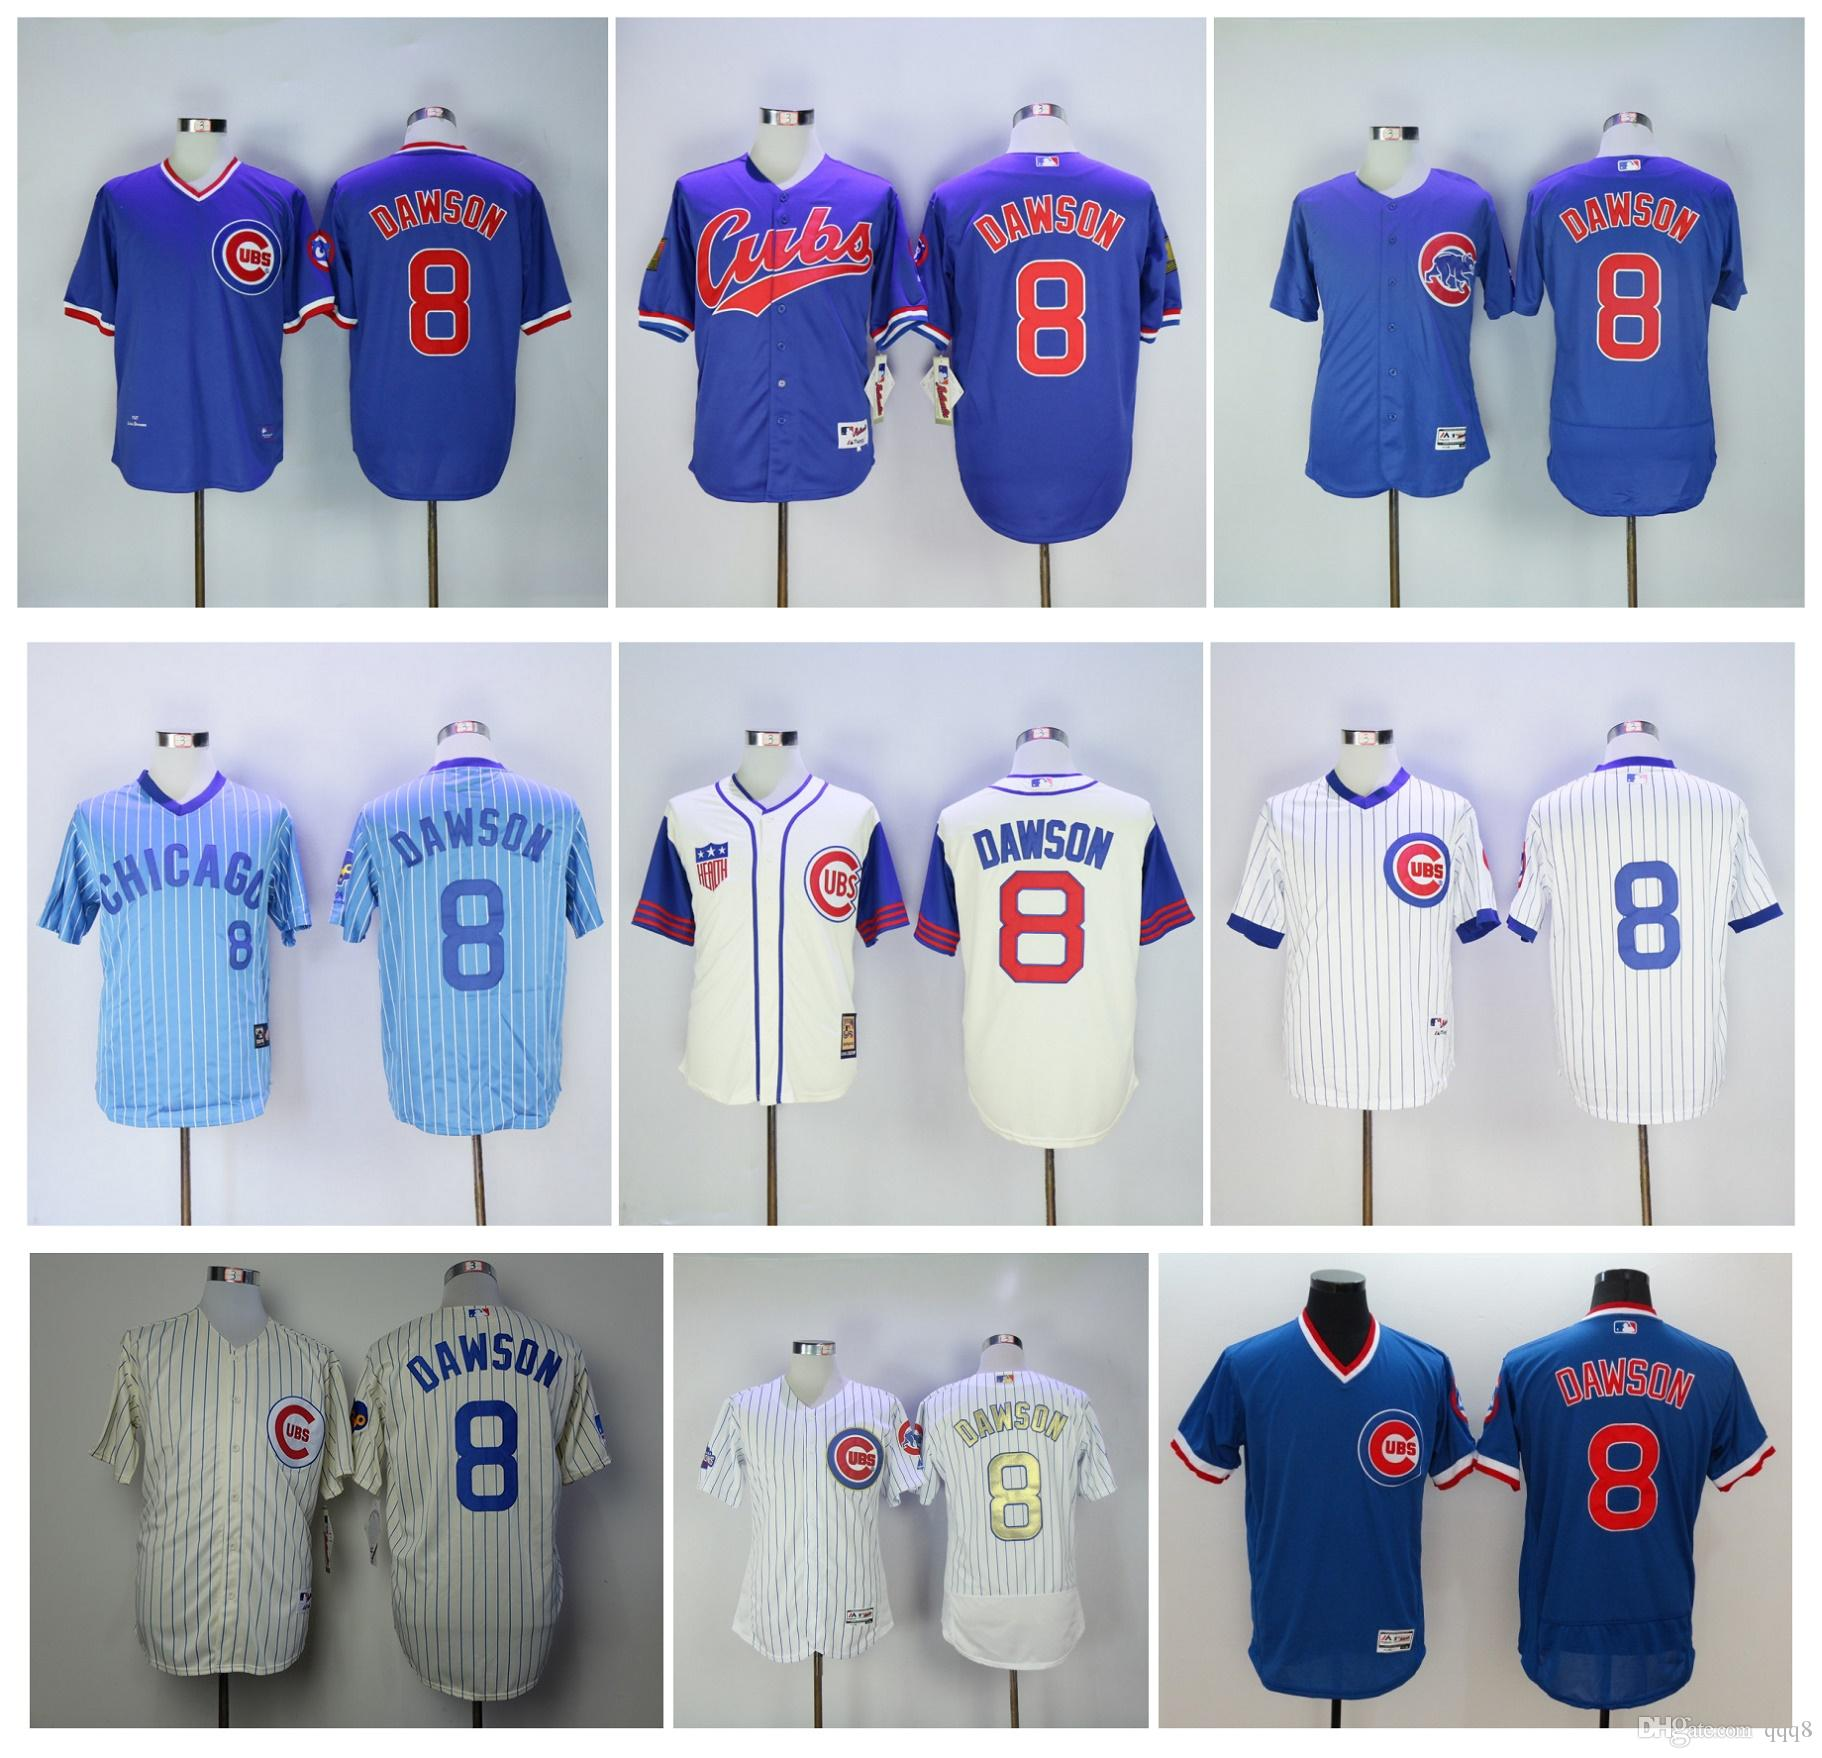 680b022b ... 2017 Throwback Chicago Cubs Jerseys 8 Andre Dawson Jersey Cream Blue  White 1942 Retro Cooperstow Shirt ...